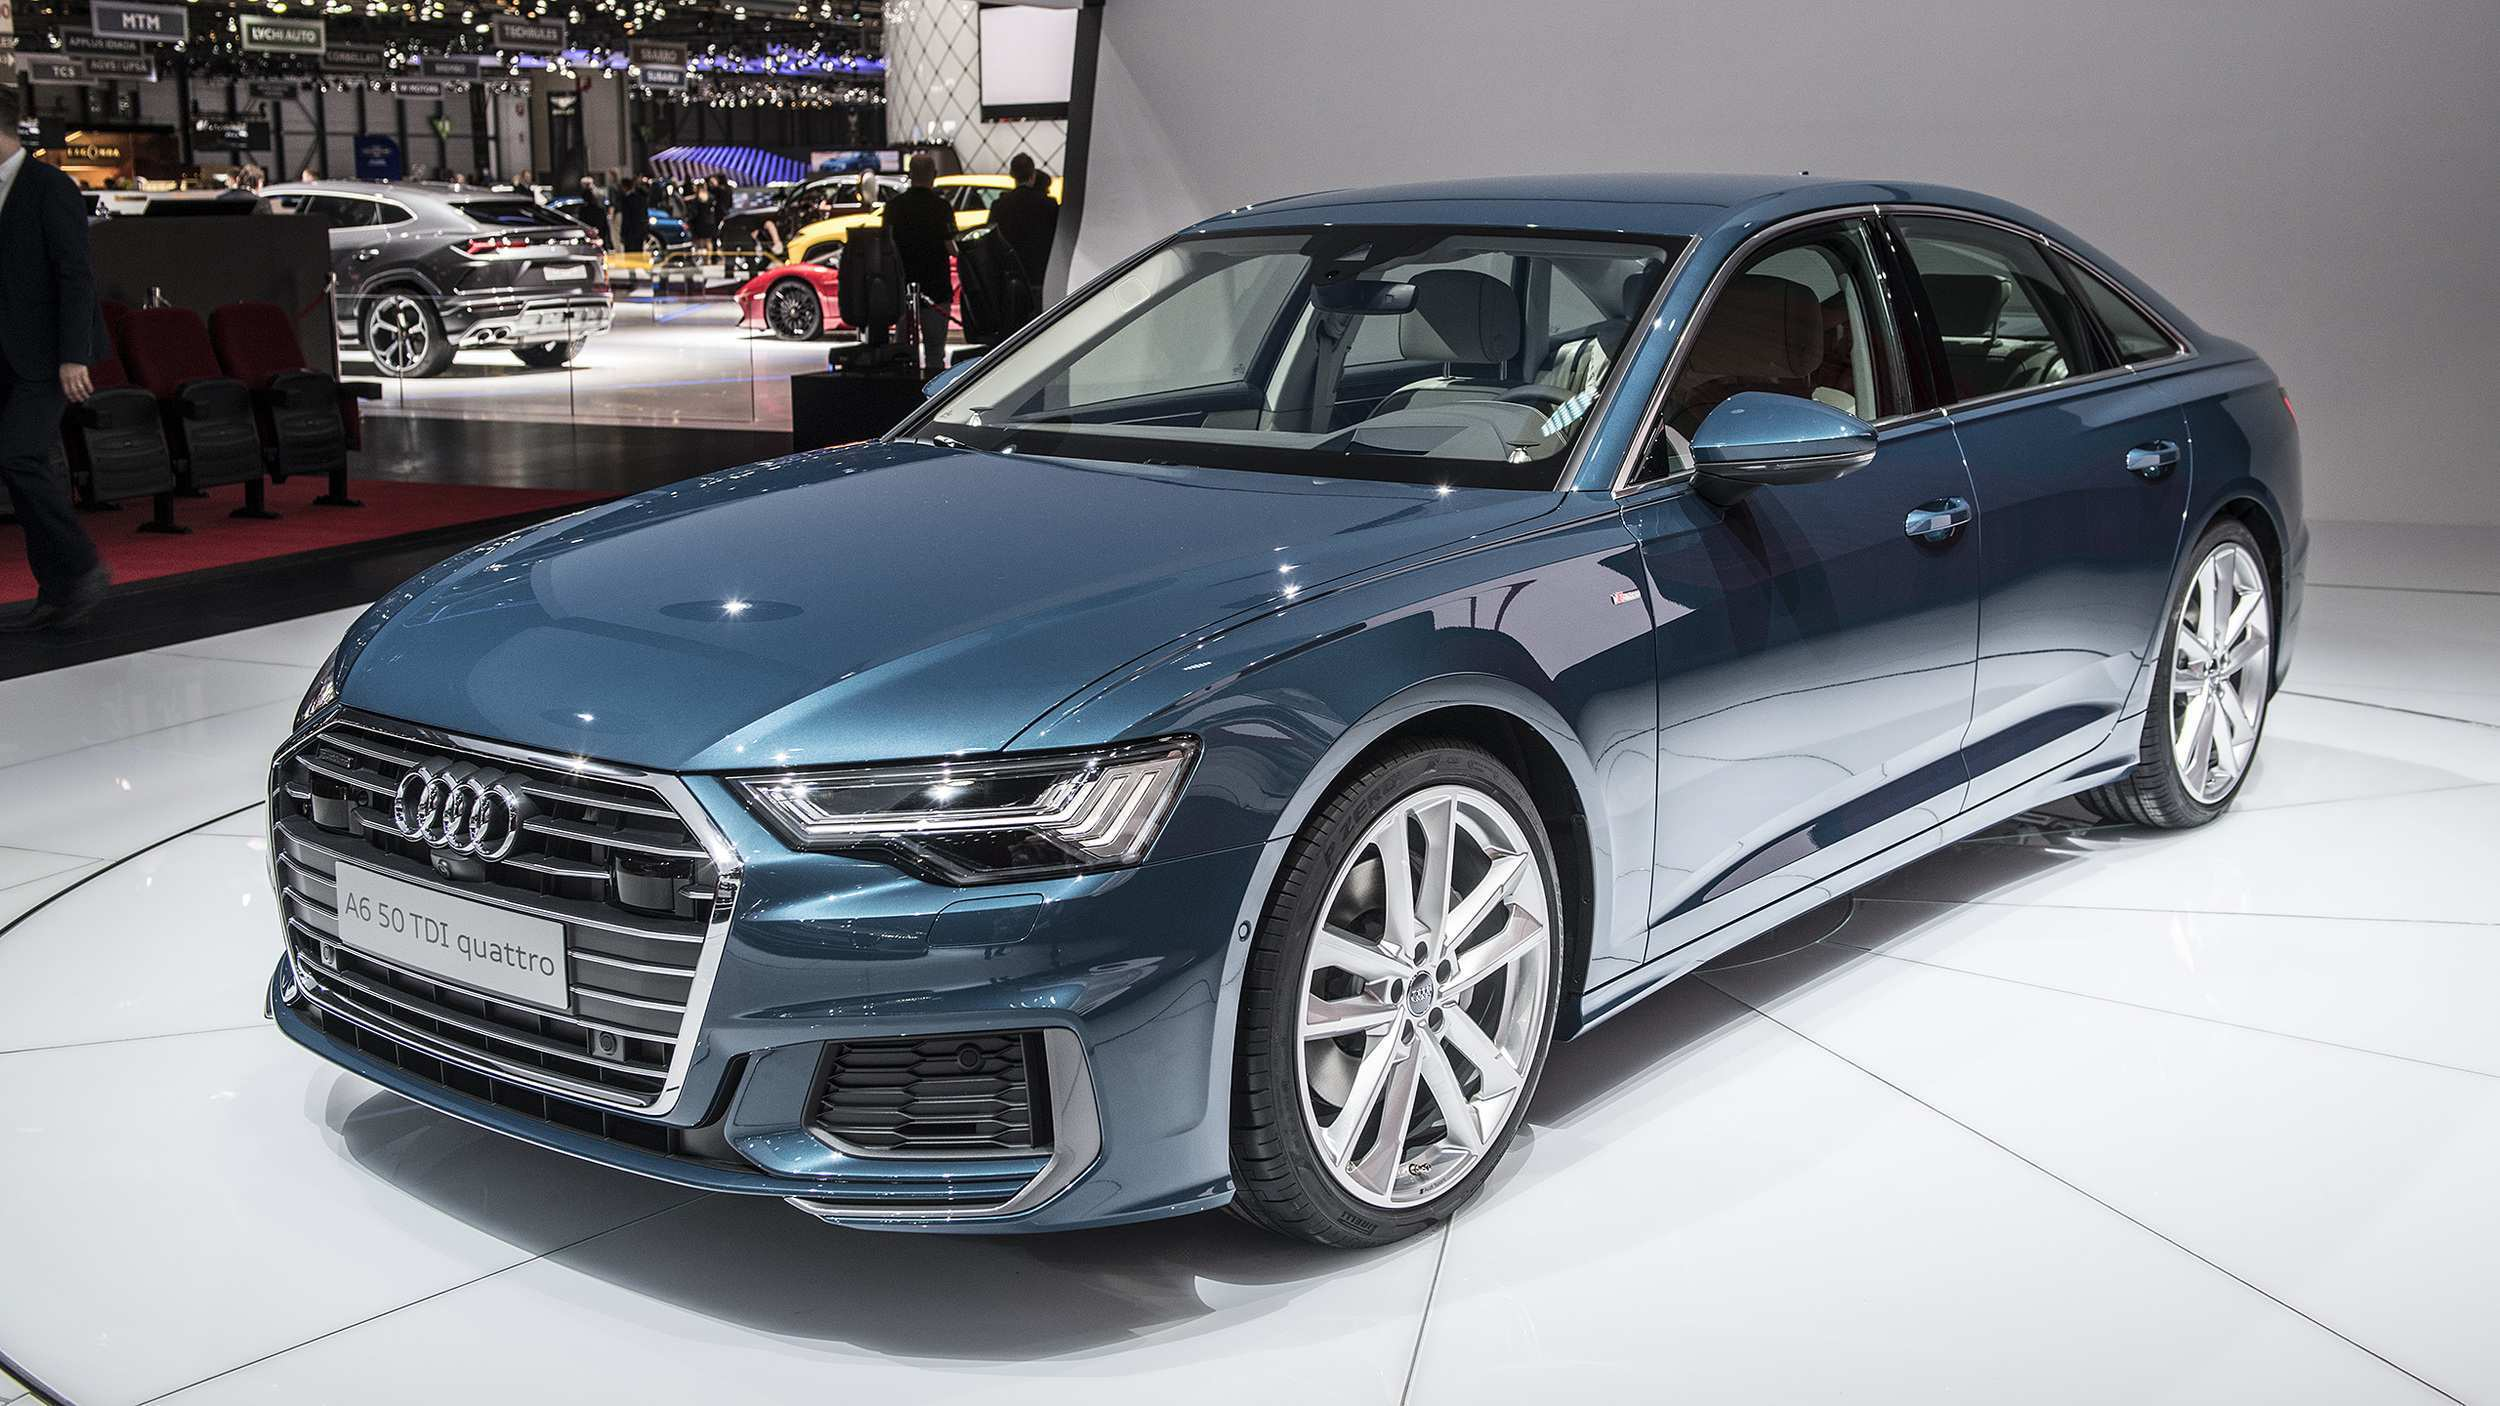 30 Great Audi A6 2019 Geneva Review Configurations with Audi A6 2019 Geneva Review